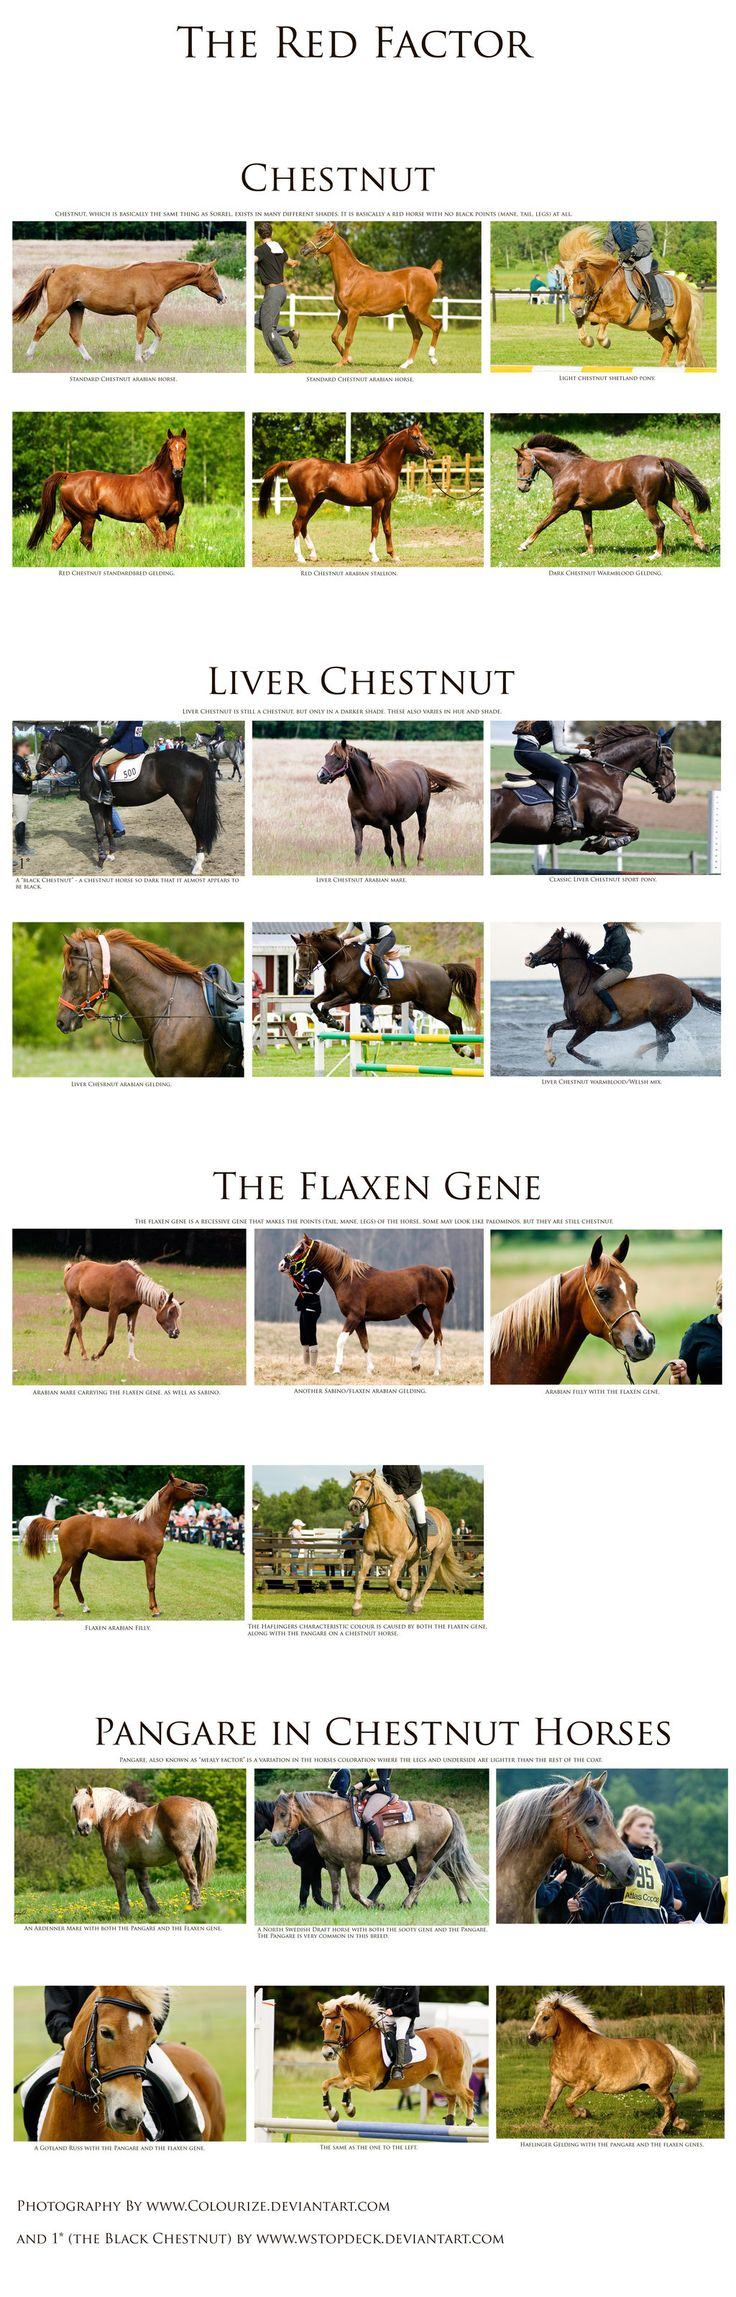 46 best horse color chart images on pinterest color charts chestnut reference sheet by colourize stock on deviantart other reference for find this pin and more on horse color chart nvjuhfo Choice Image